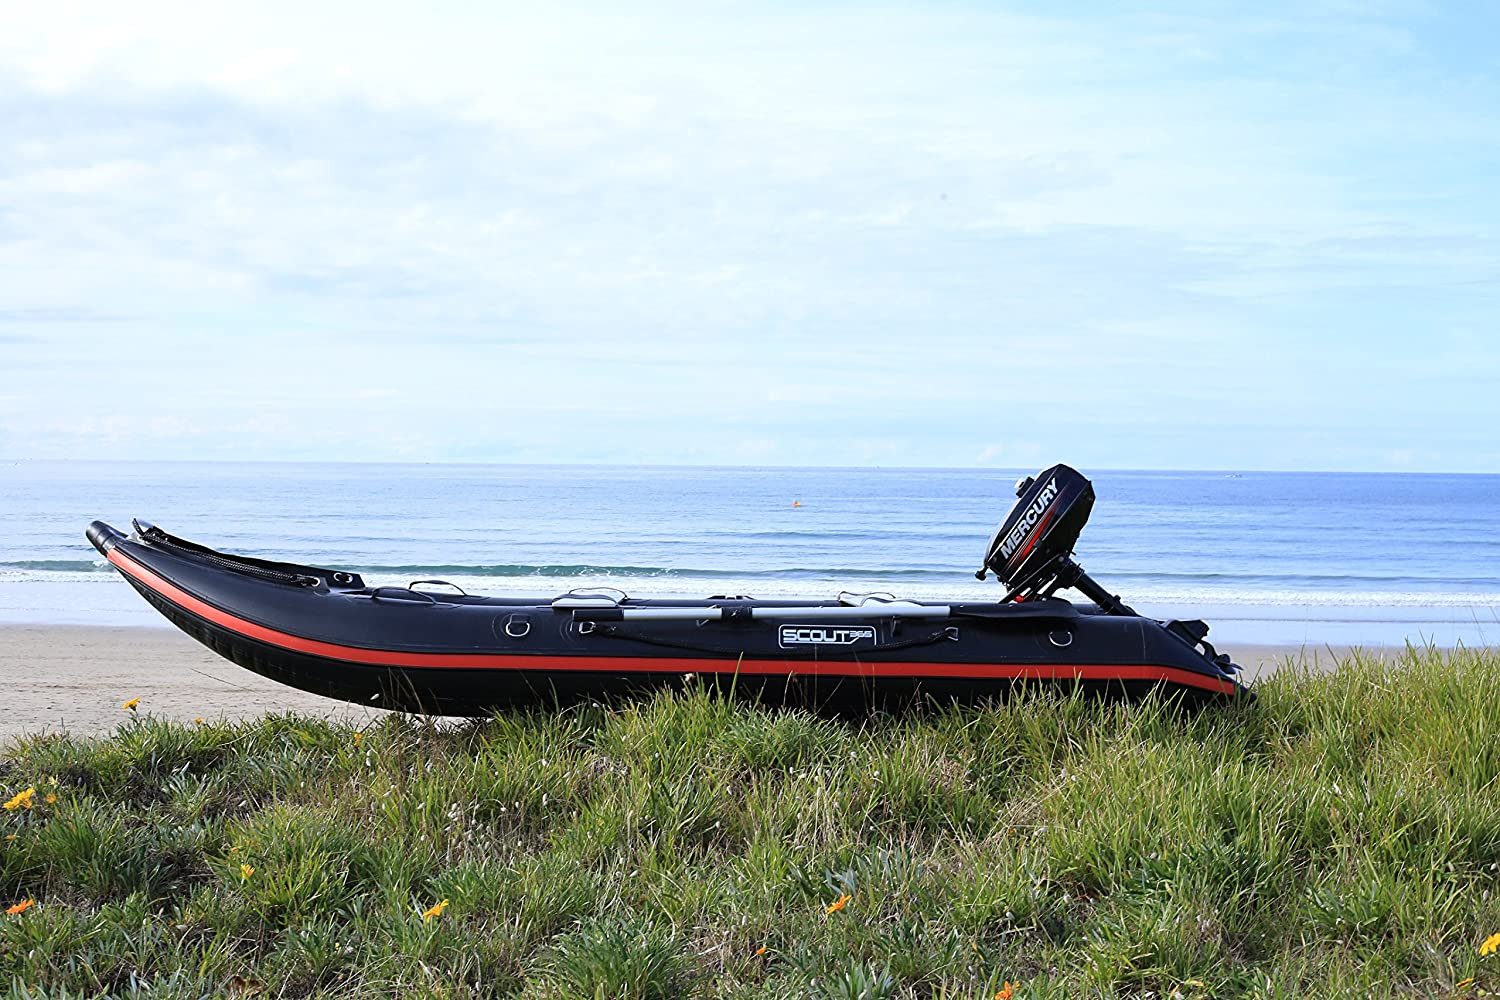 The Ultimate Kayak Alternative Scout365 Portable Bought First Boat Few Questions Of Course Bass Boats Canoes Inflatable Yellow Sports Outdoors